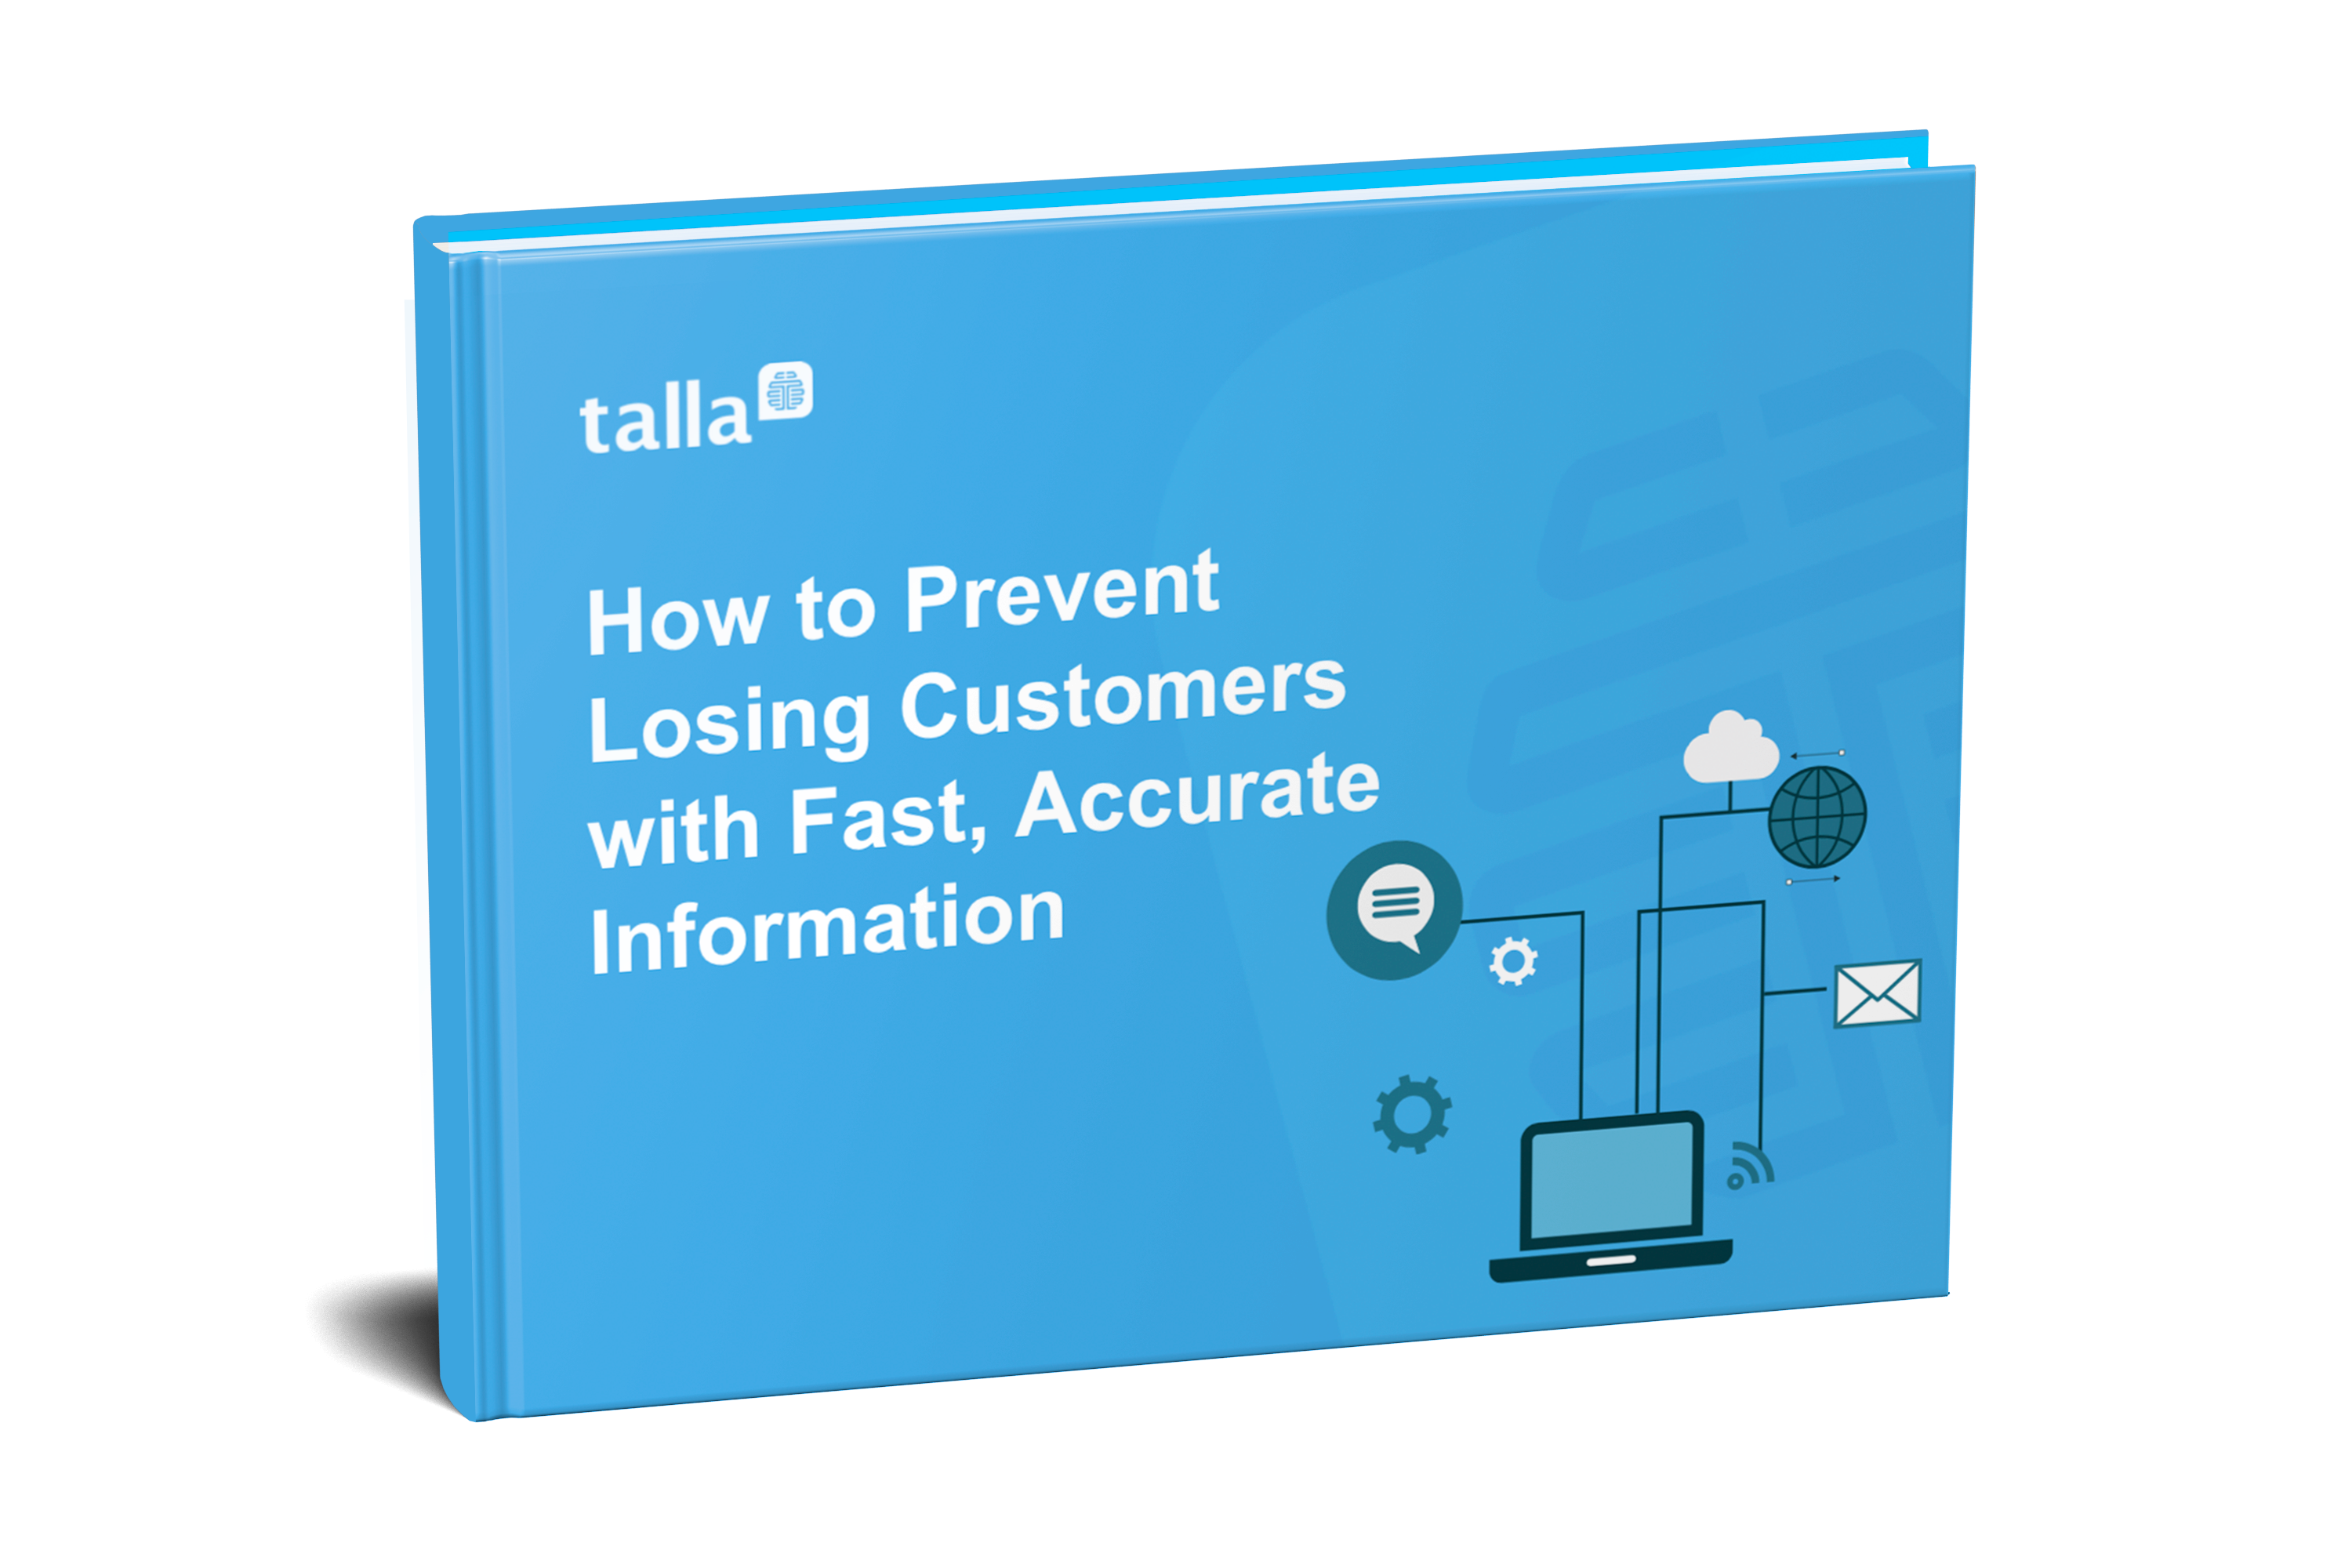 how to prevent losing customers with fast, accurate information